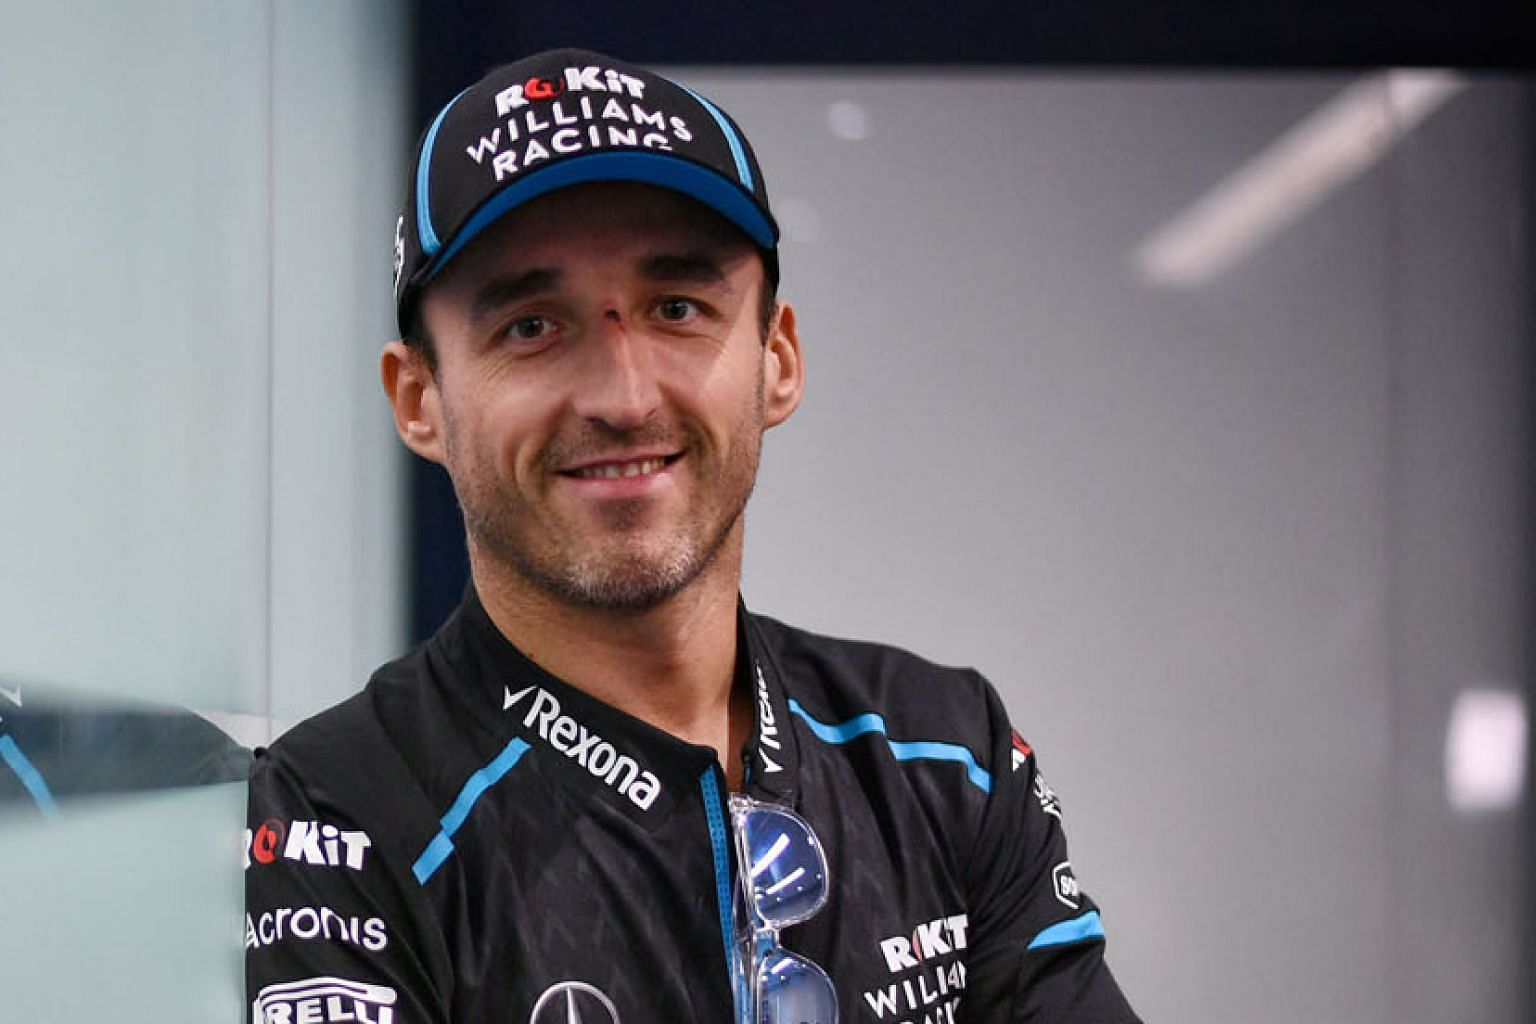 Poland's Robert Kubica joined Williams this year after suffering near-fatal injuries in a minor rally in Italy in 2011. He announced yesterday he will leave the team at the end of year. ST PHOTO: ARIFFIN JAMAR